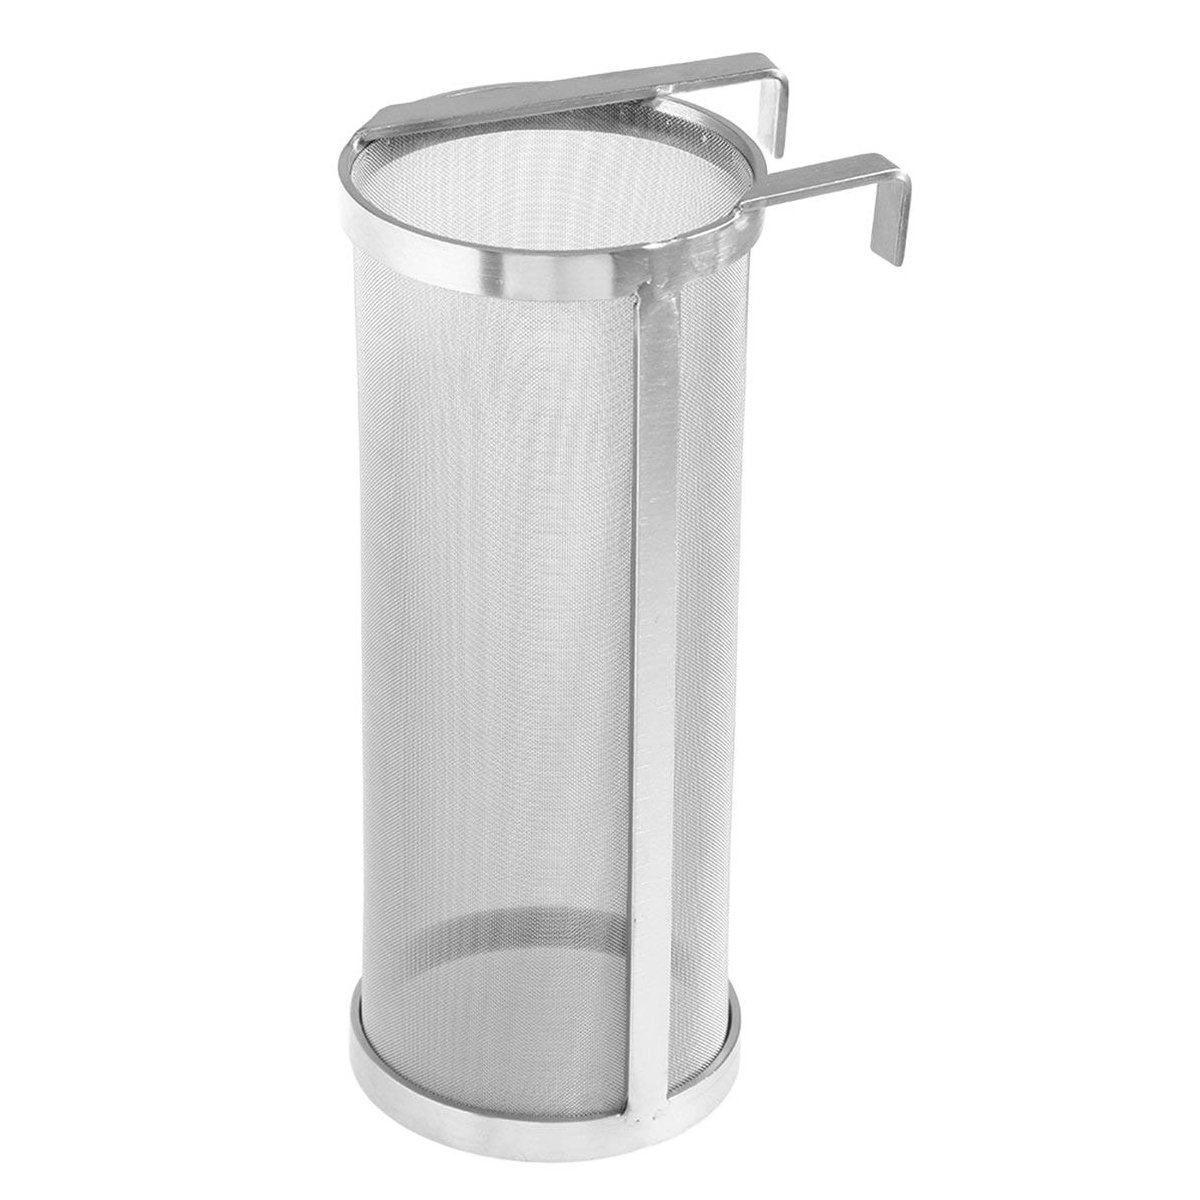 Toogoo Stainless Steel Hop Filter Strainer Mesh Hopper Strainer for Home Beer Brewing Kettle (4 x 10inch)